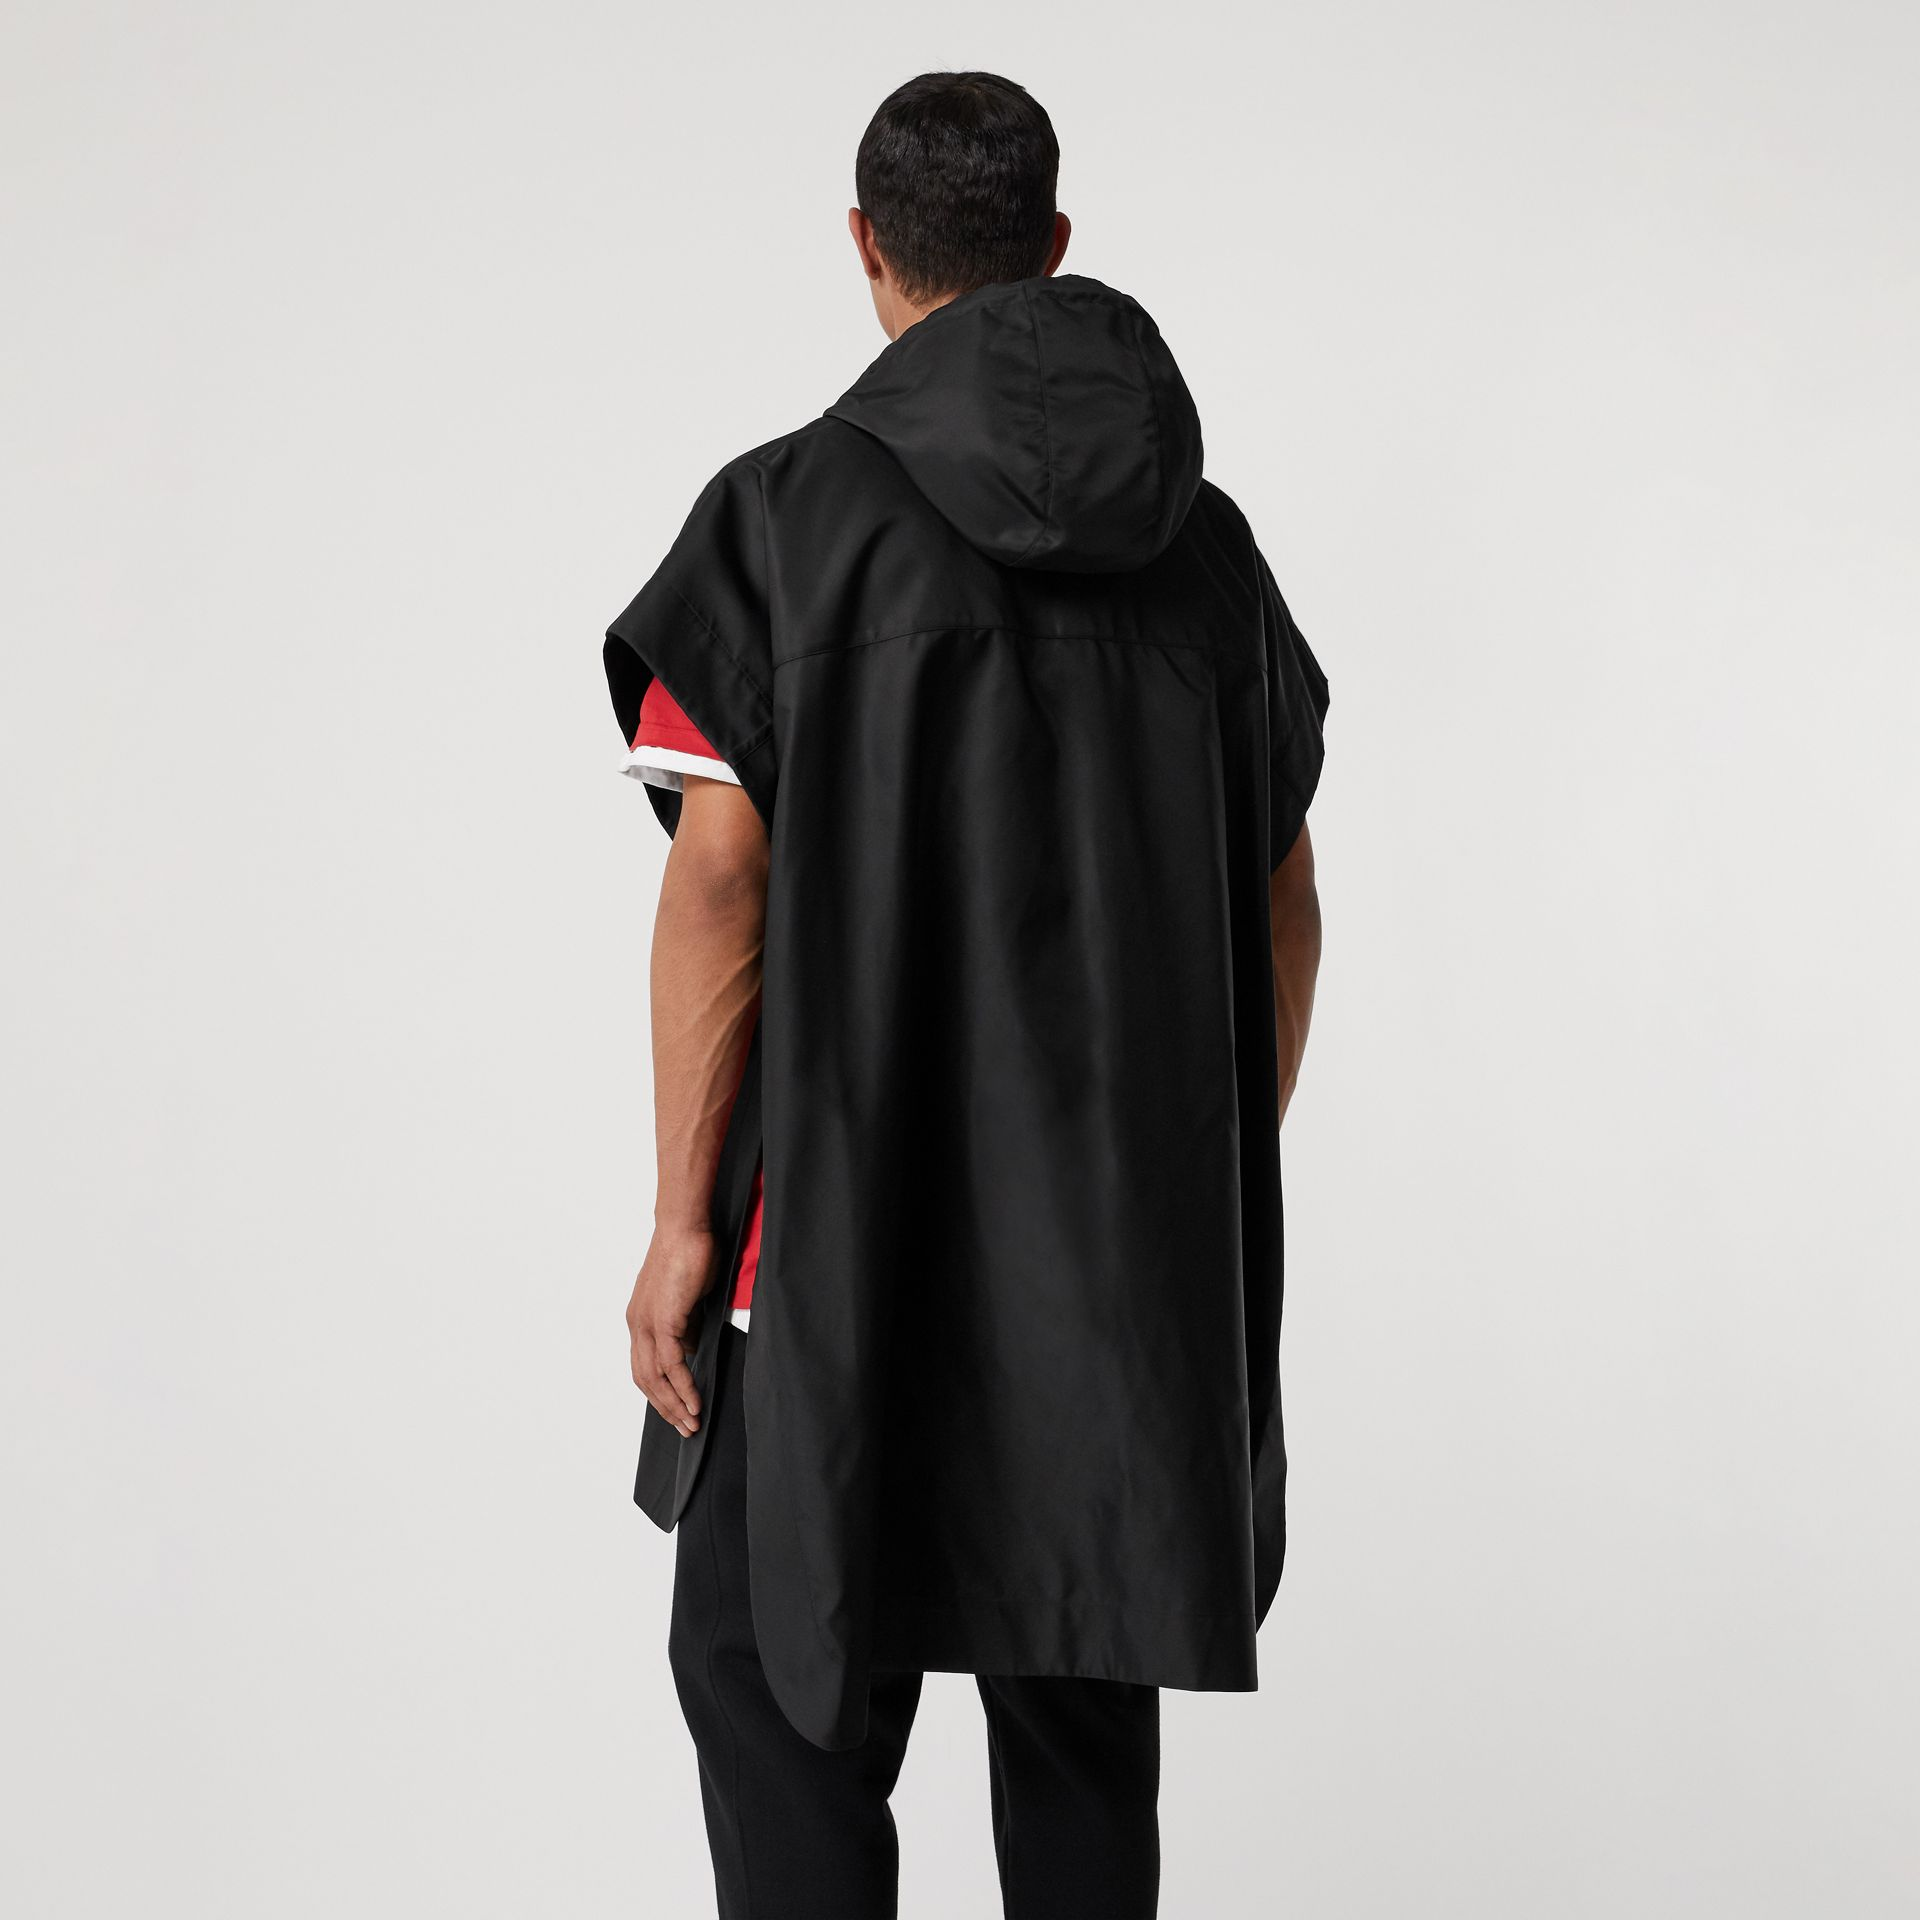 Monogram Motif Nylon Oversized Hooded Poncho in Black | Burberry - gallery image 14